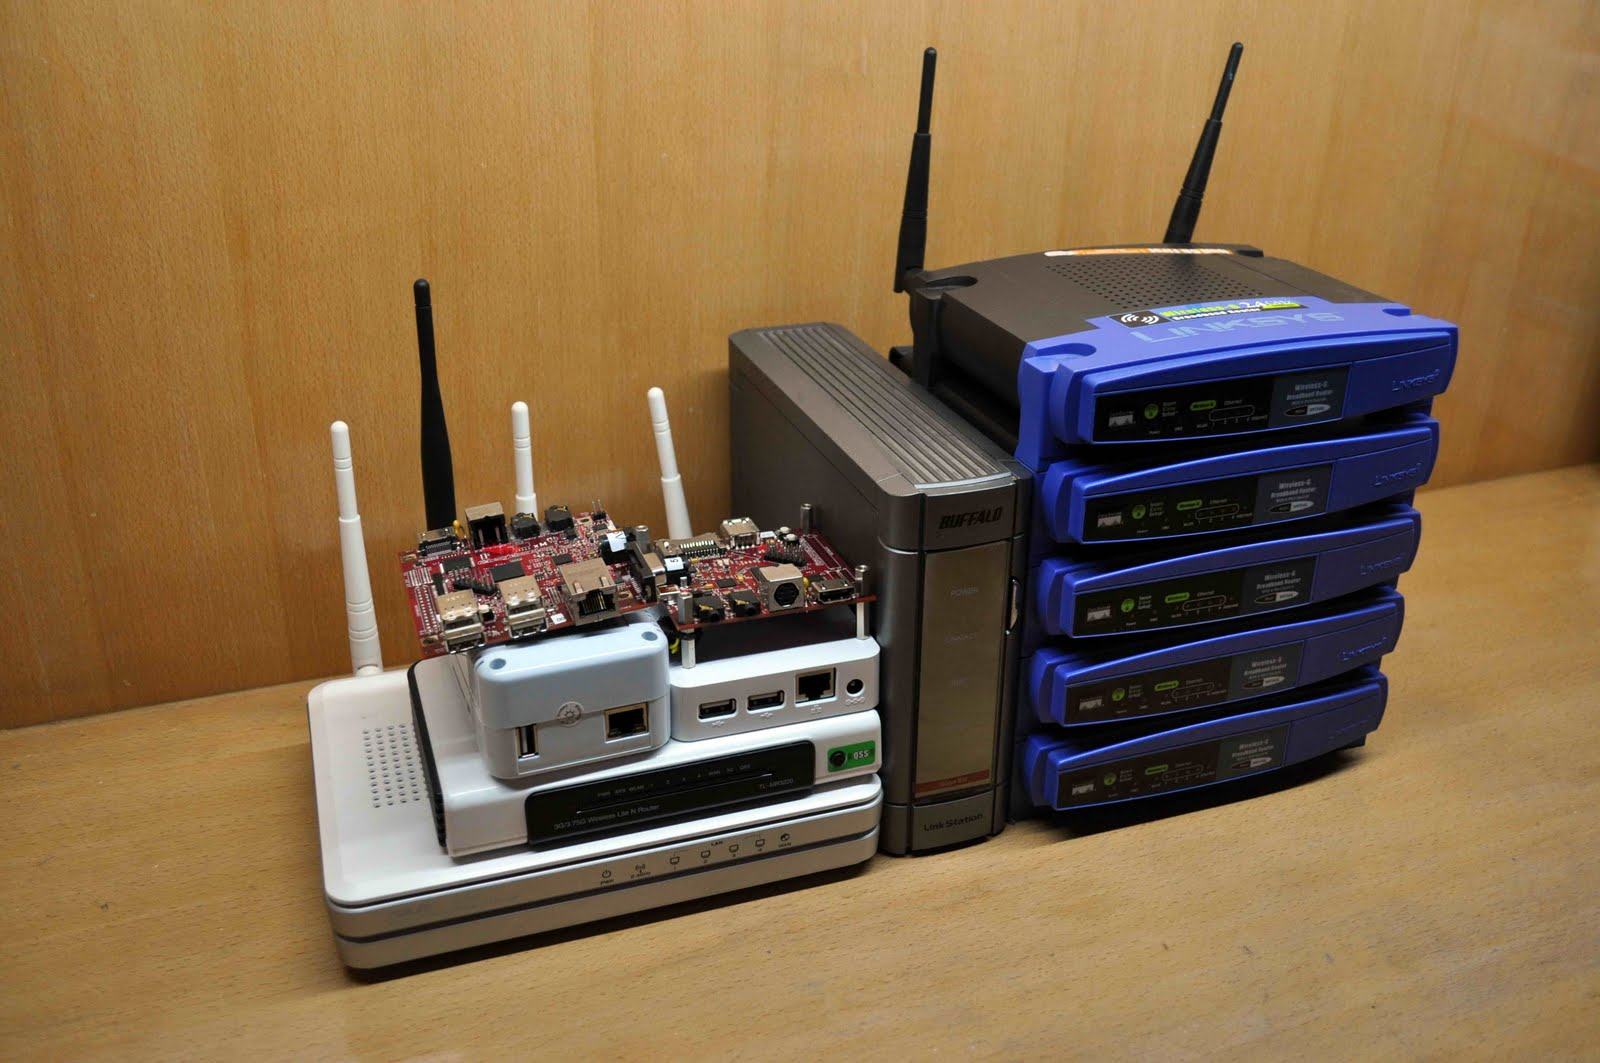 Cheap Hackable Linux Box For Robotics Home Automation And Other Diy H W Stuff